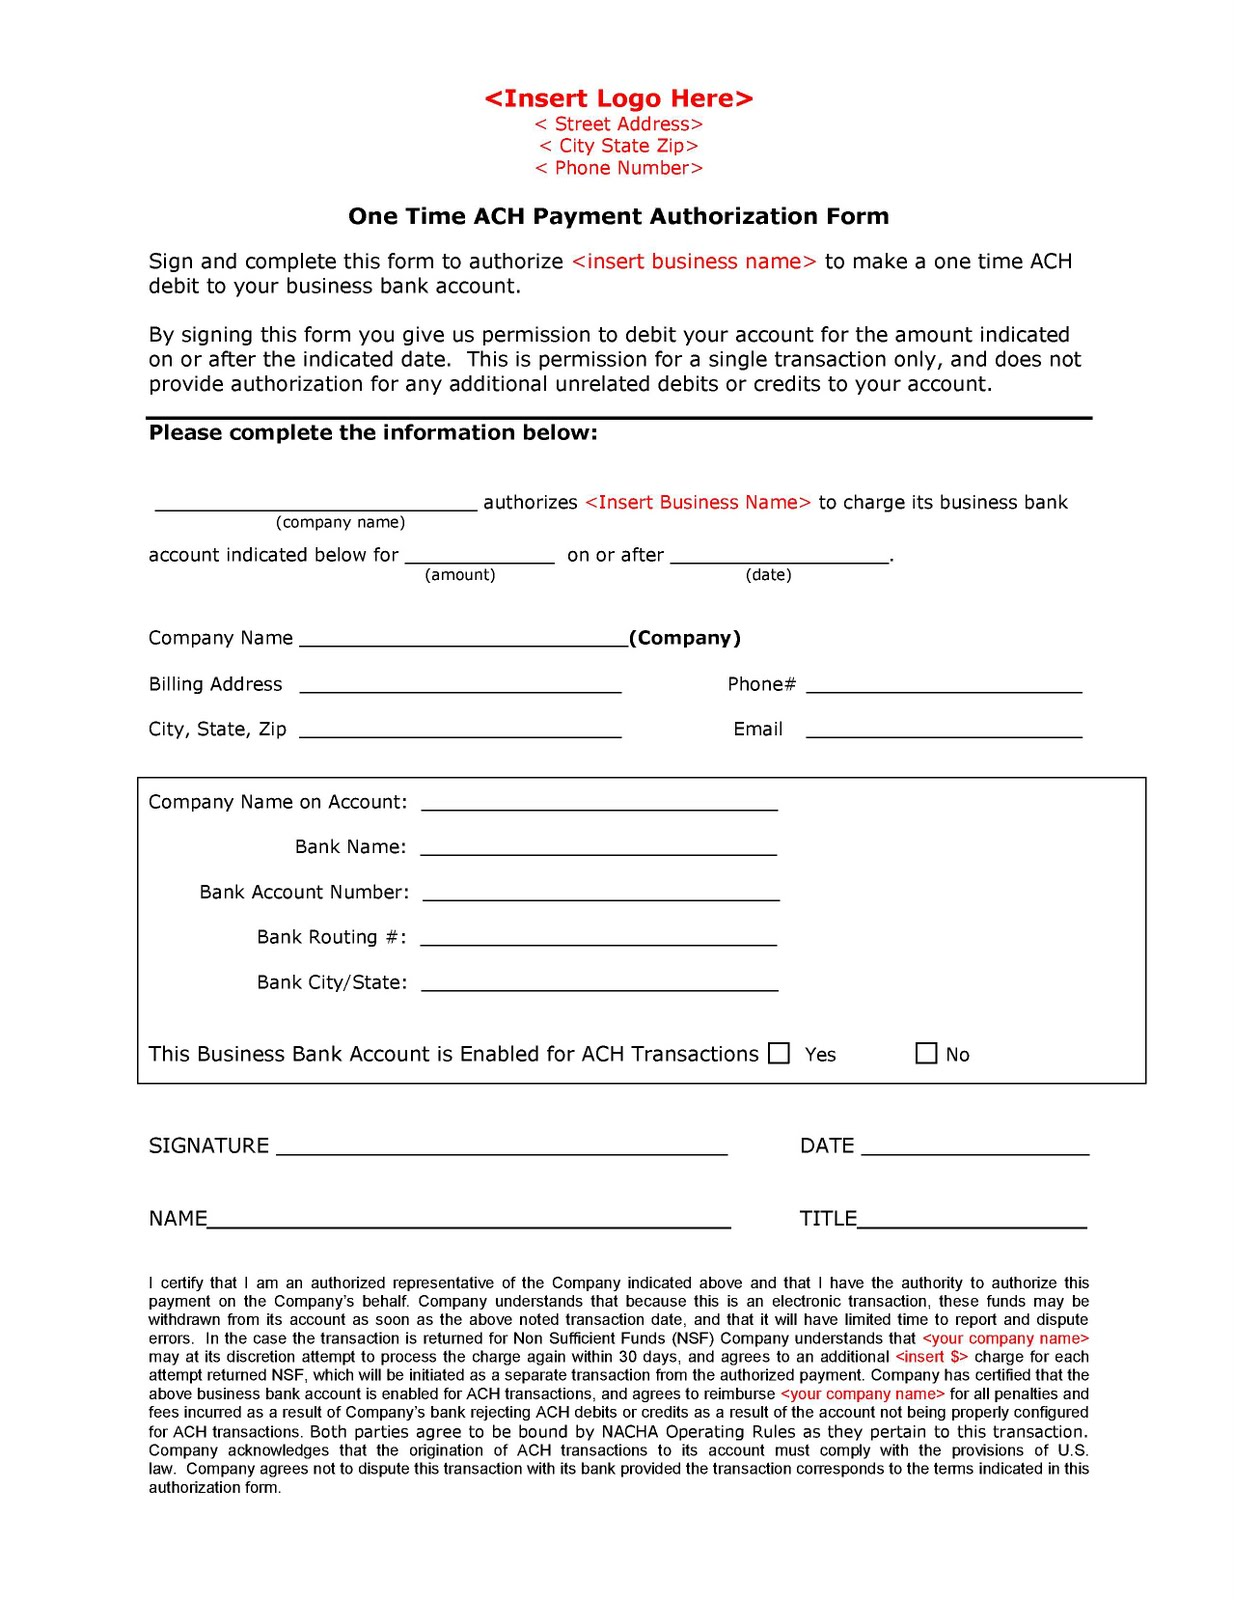 ach form template template ach form template